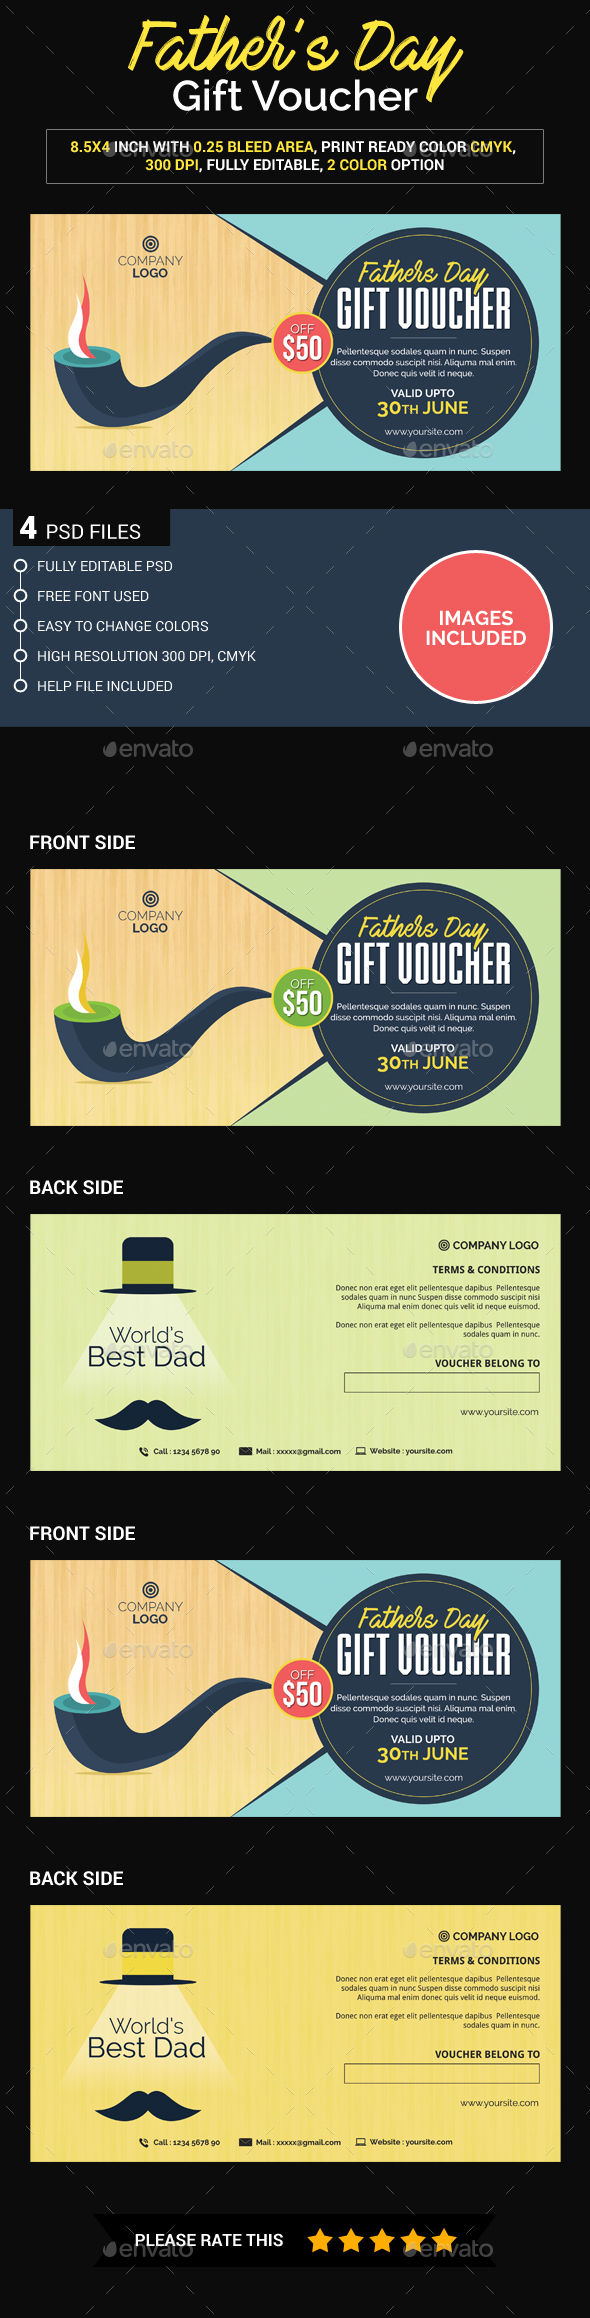 Father's Days gift voucher - Loyalty Cards Cards & Invites